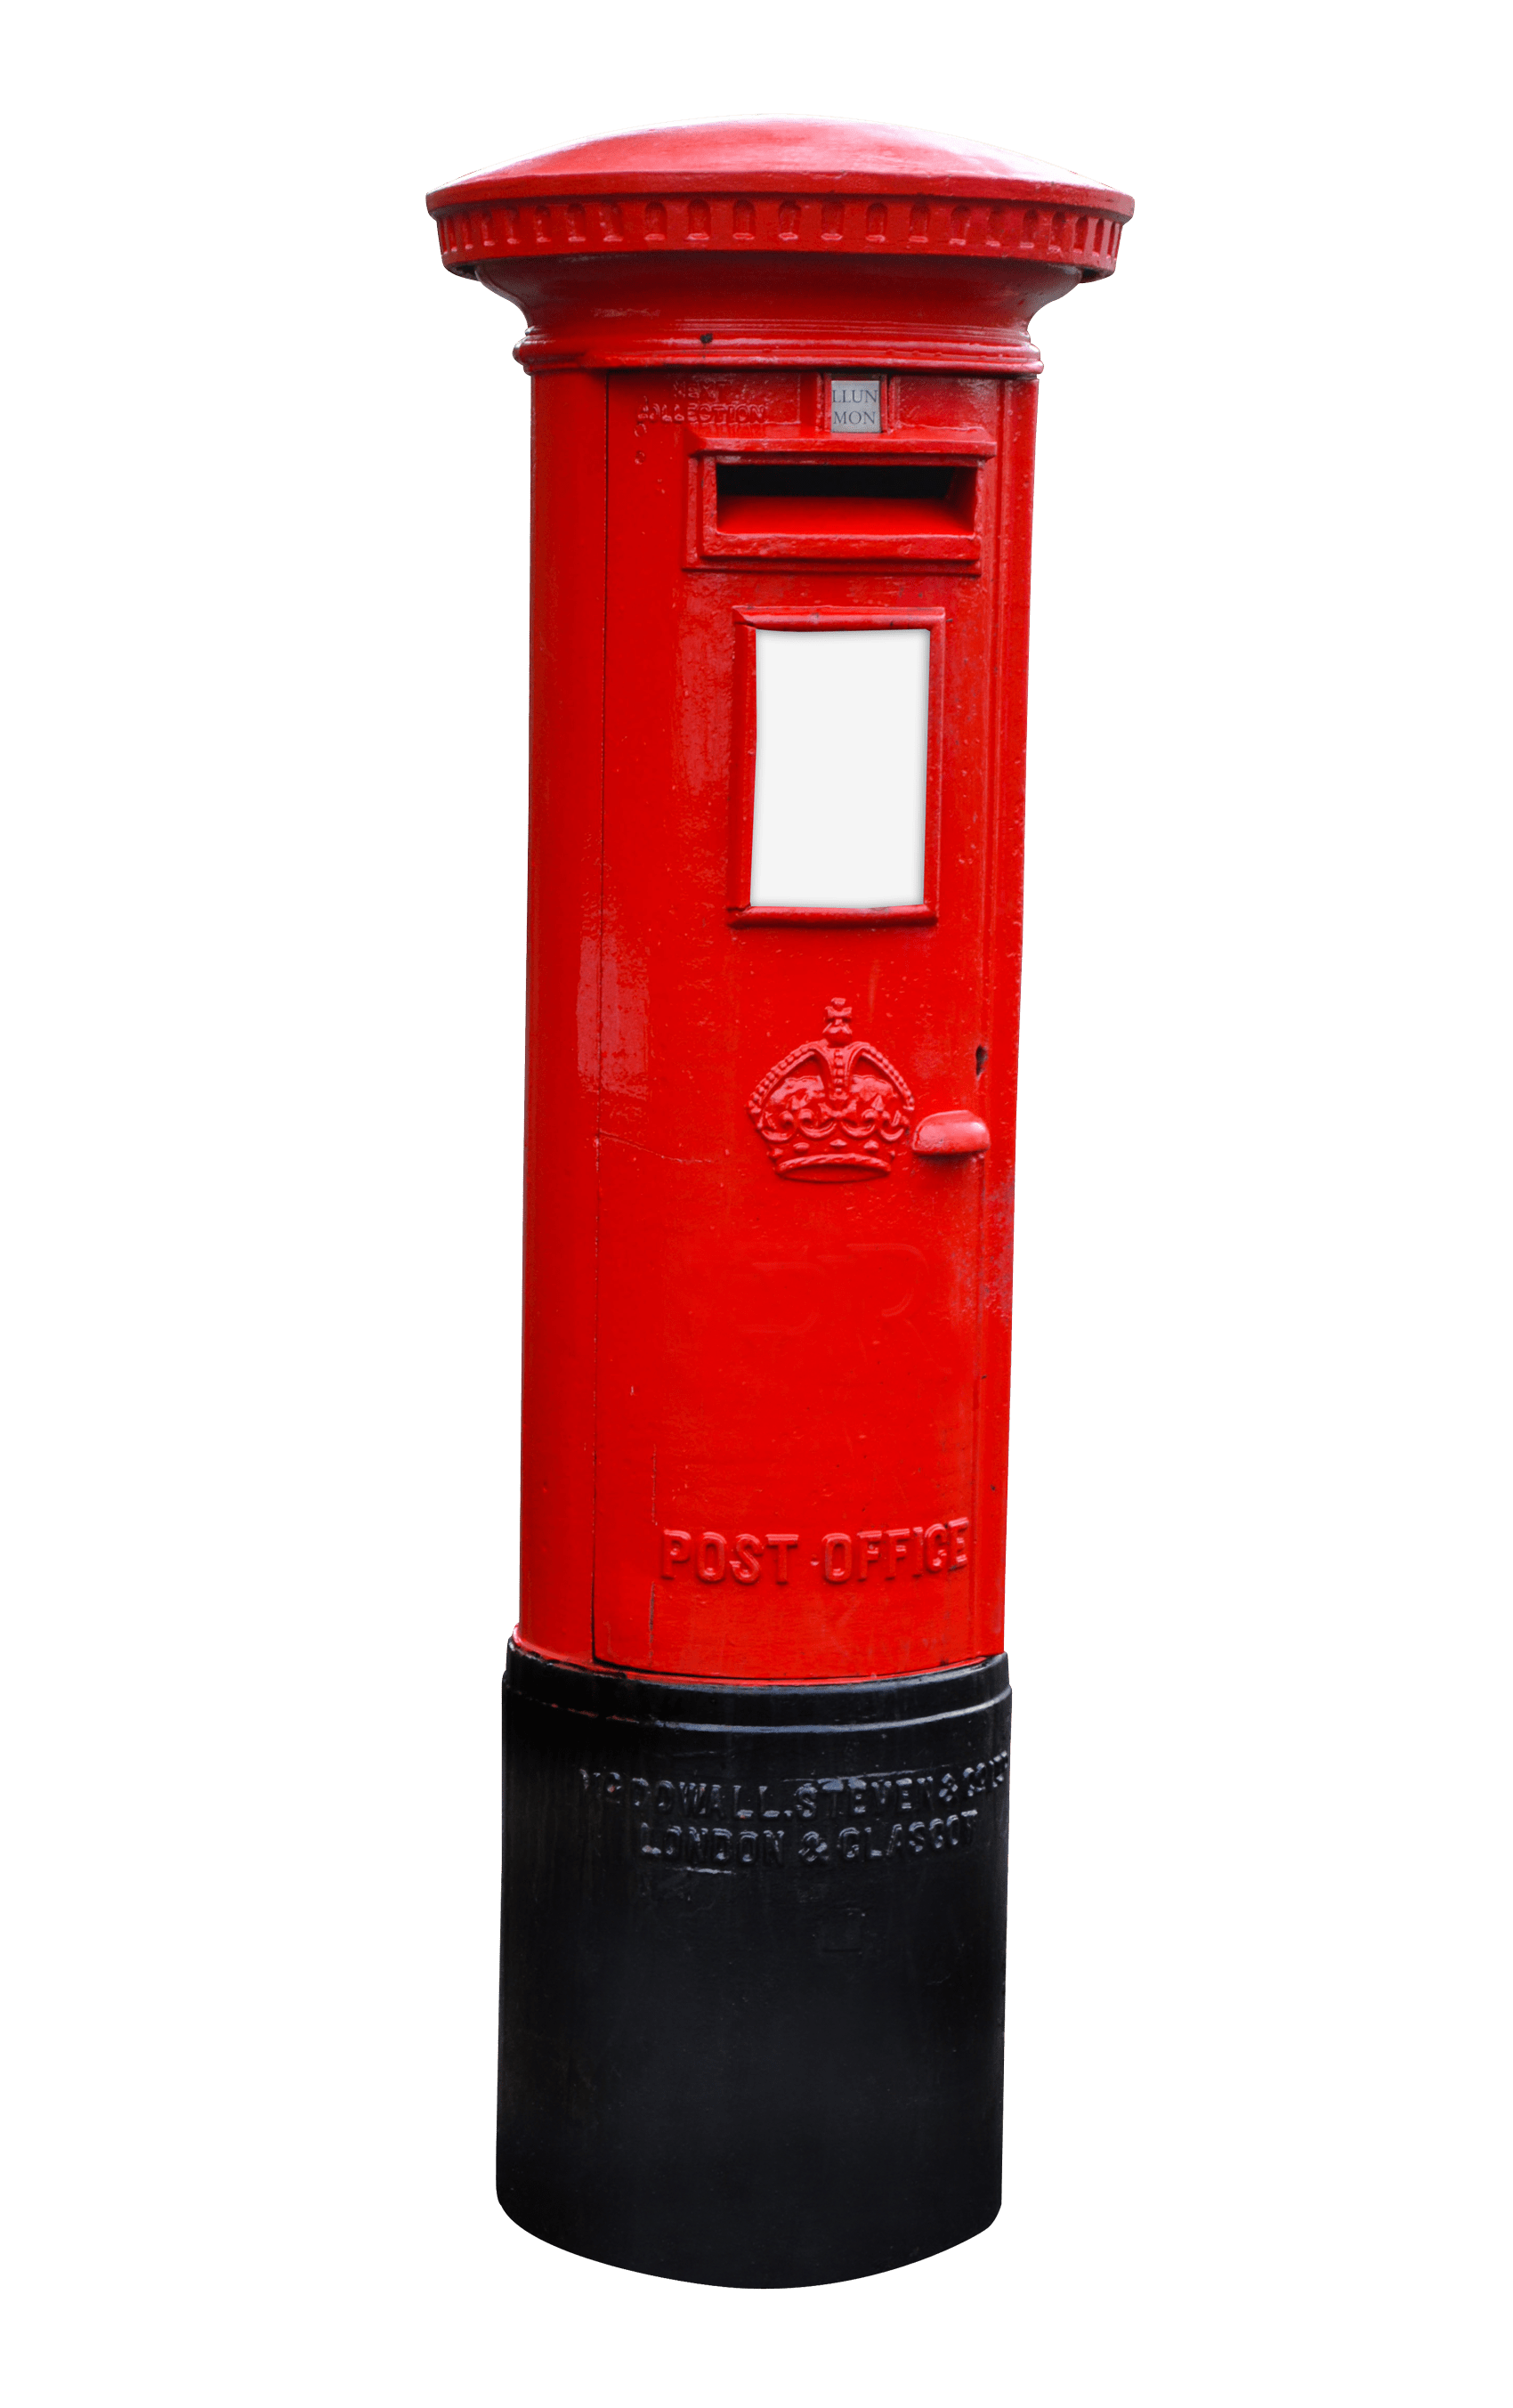 Mail clipart postbox. Royal post box icon